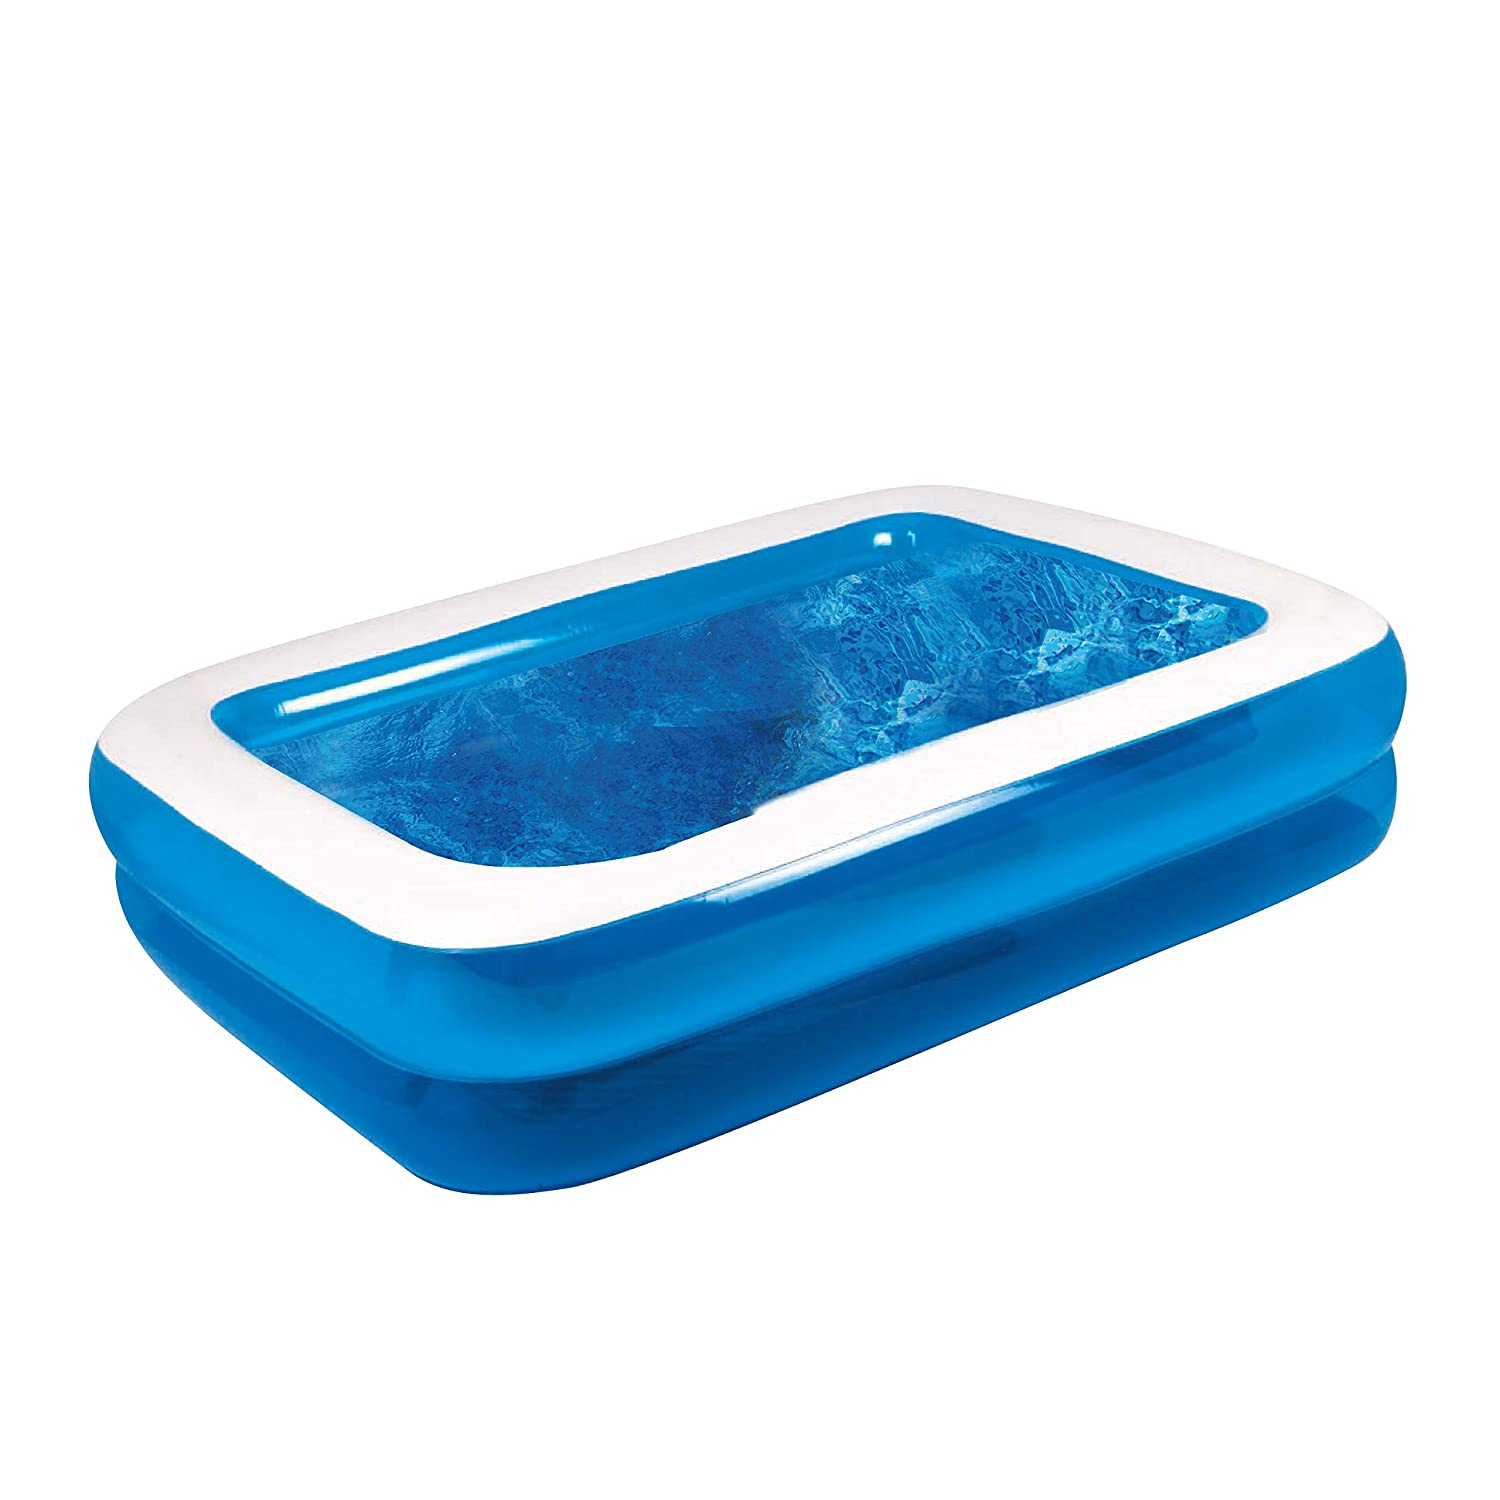 Amazon.com: GardenKraft – Piscina hinchable rectangular (3 m ...